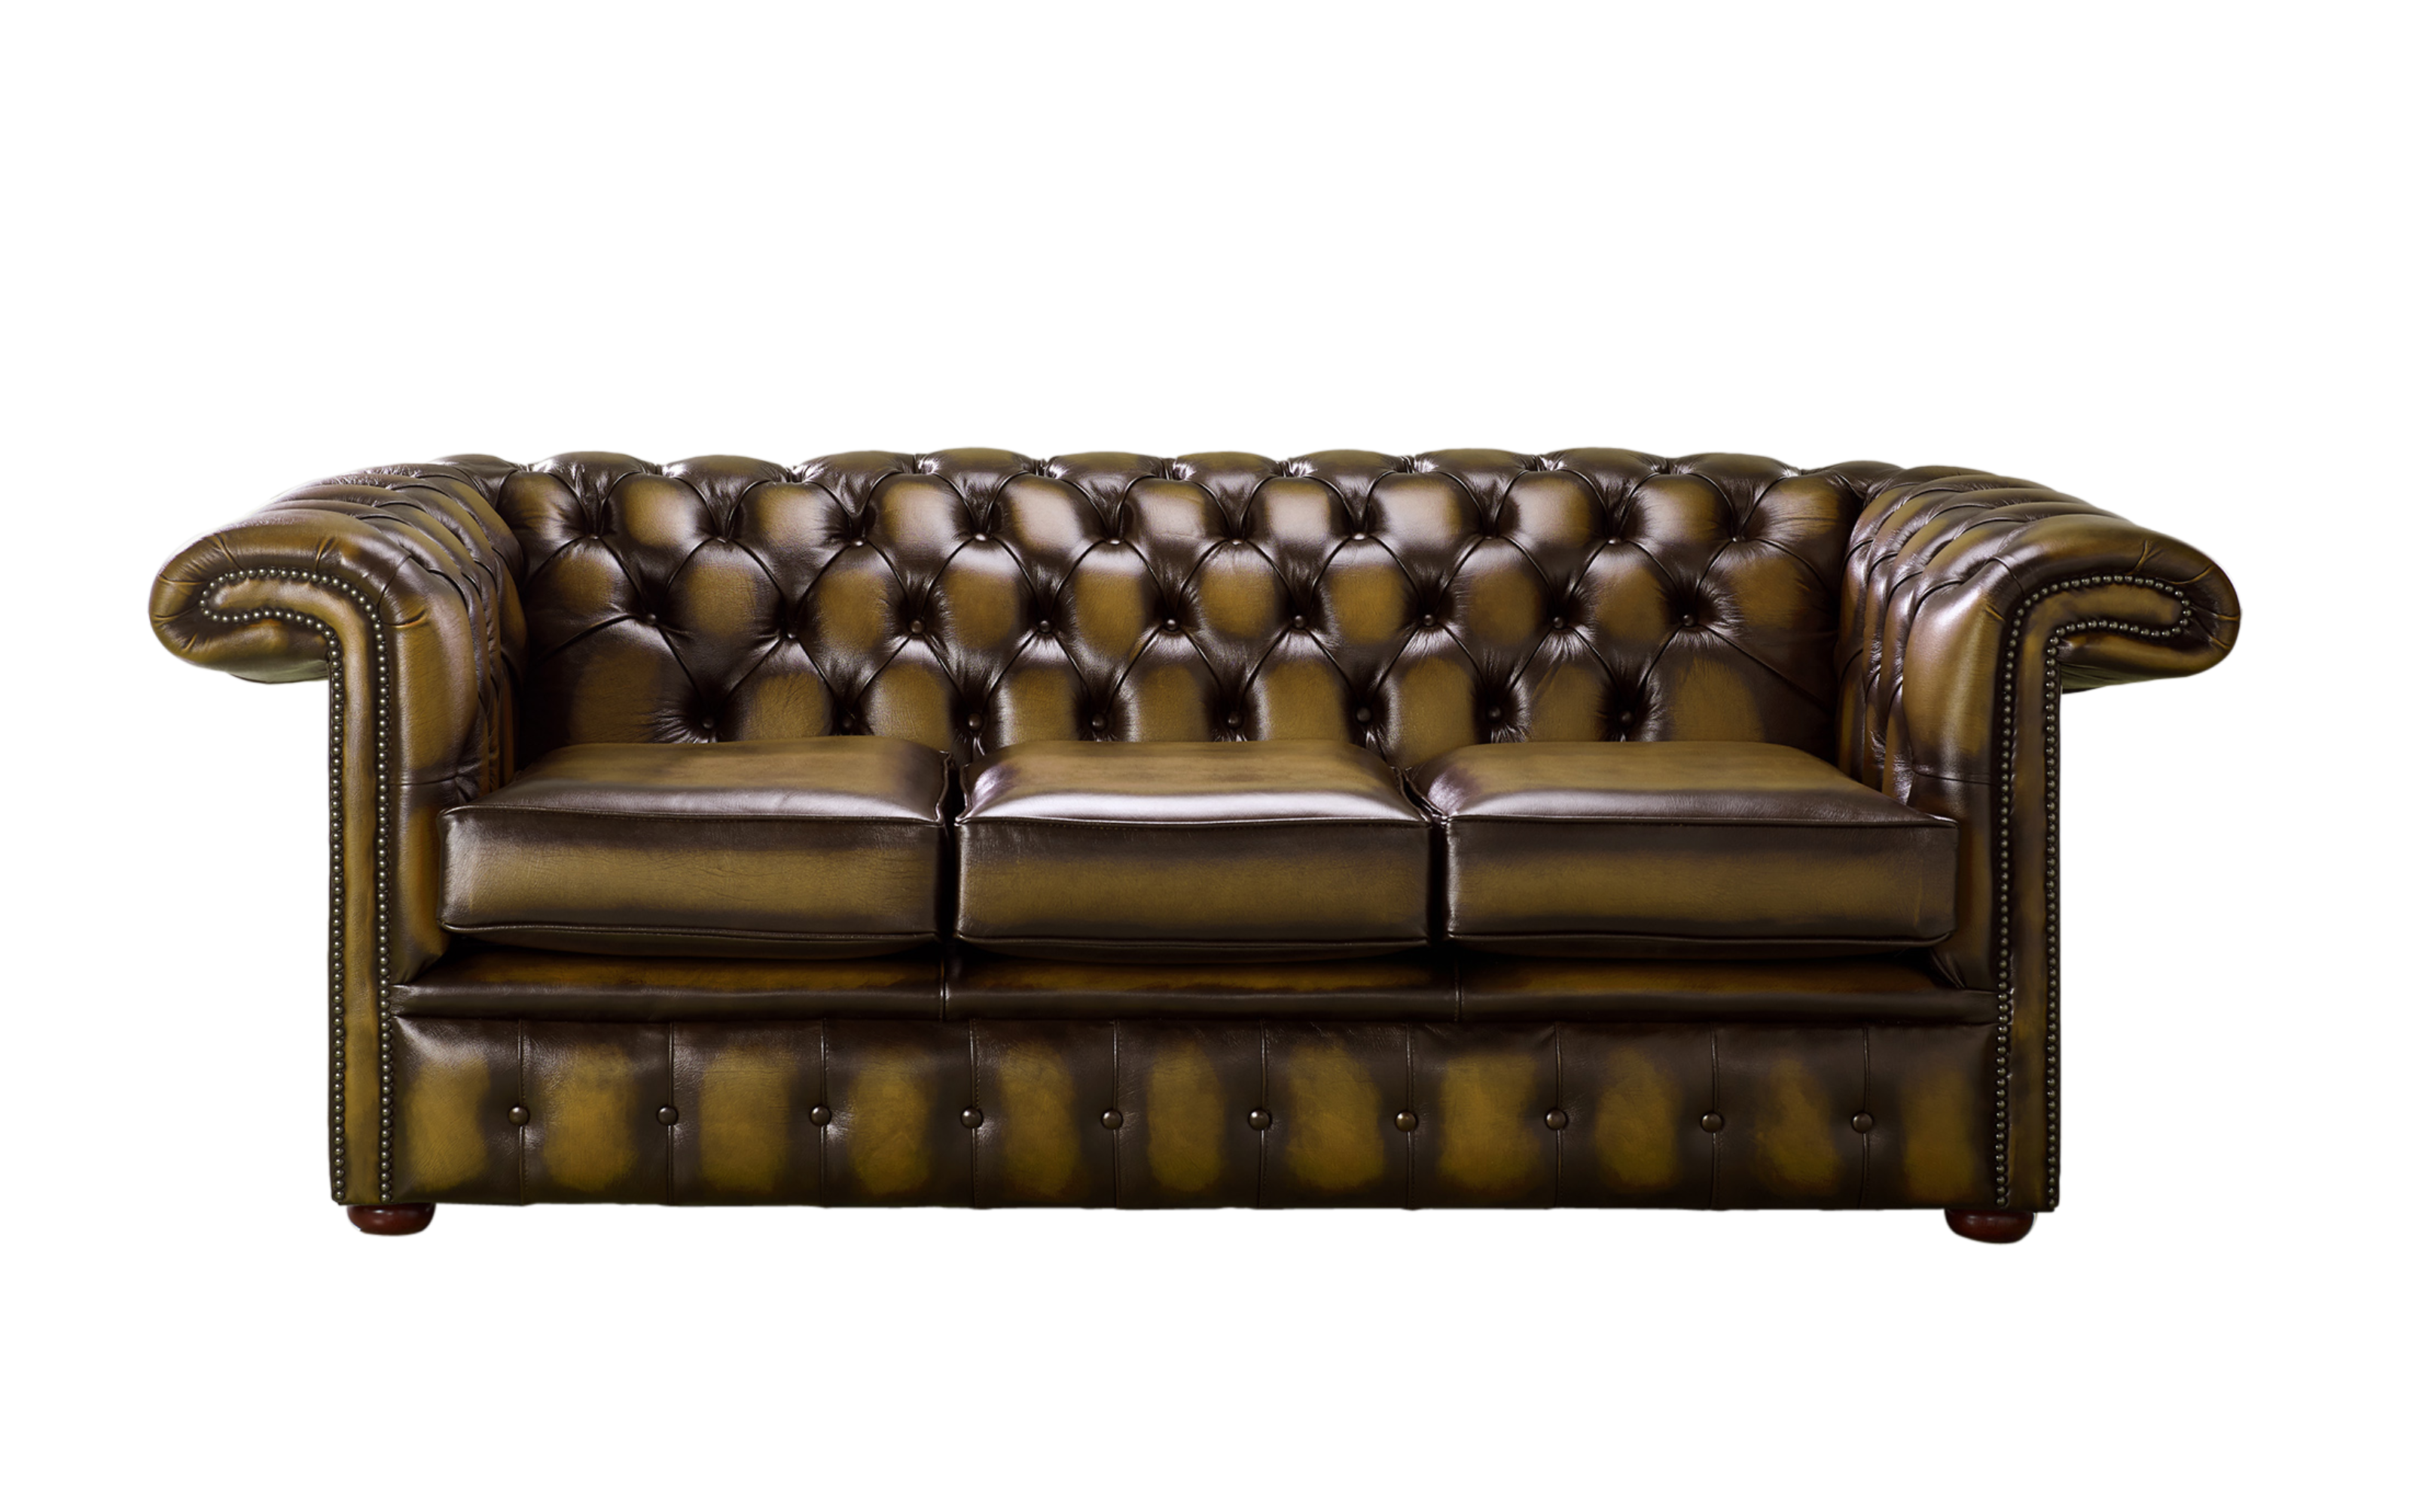 Astounding Chesterfield 1857 Hockey Stick 3 Seater Antique Gold Leather Sofa Offer Gmtry Best Dining Table And Chair Ideas Images Gmtryco